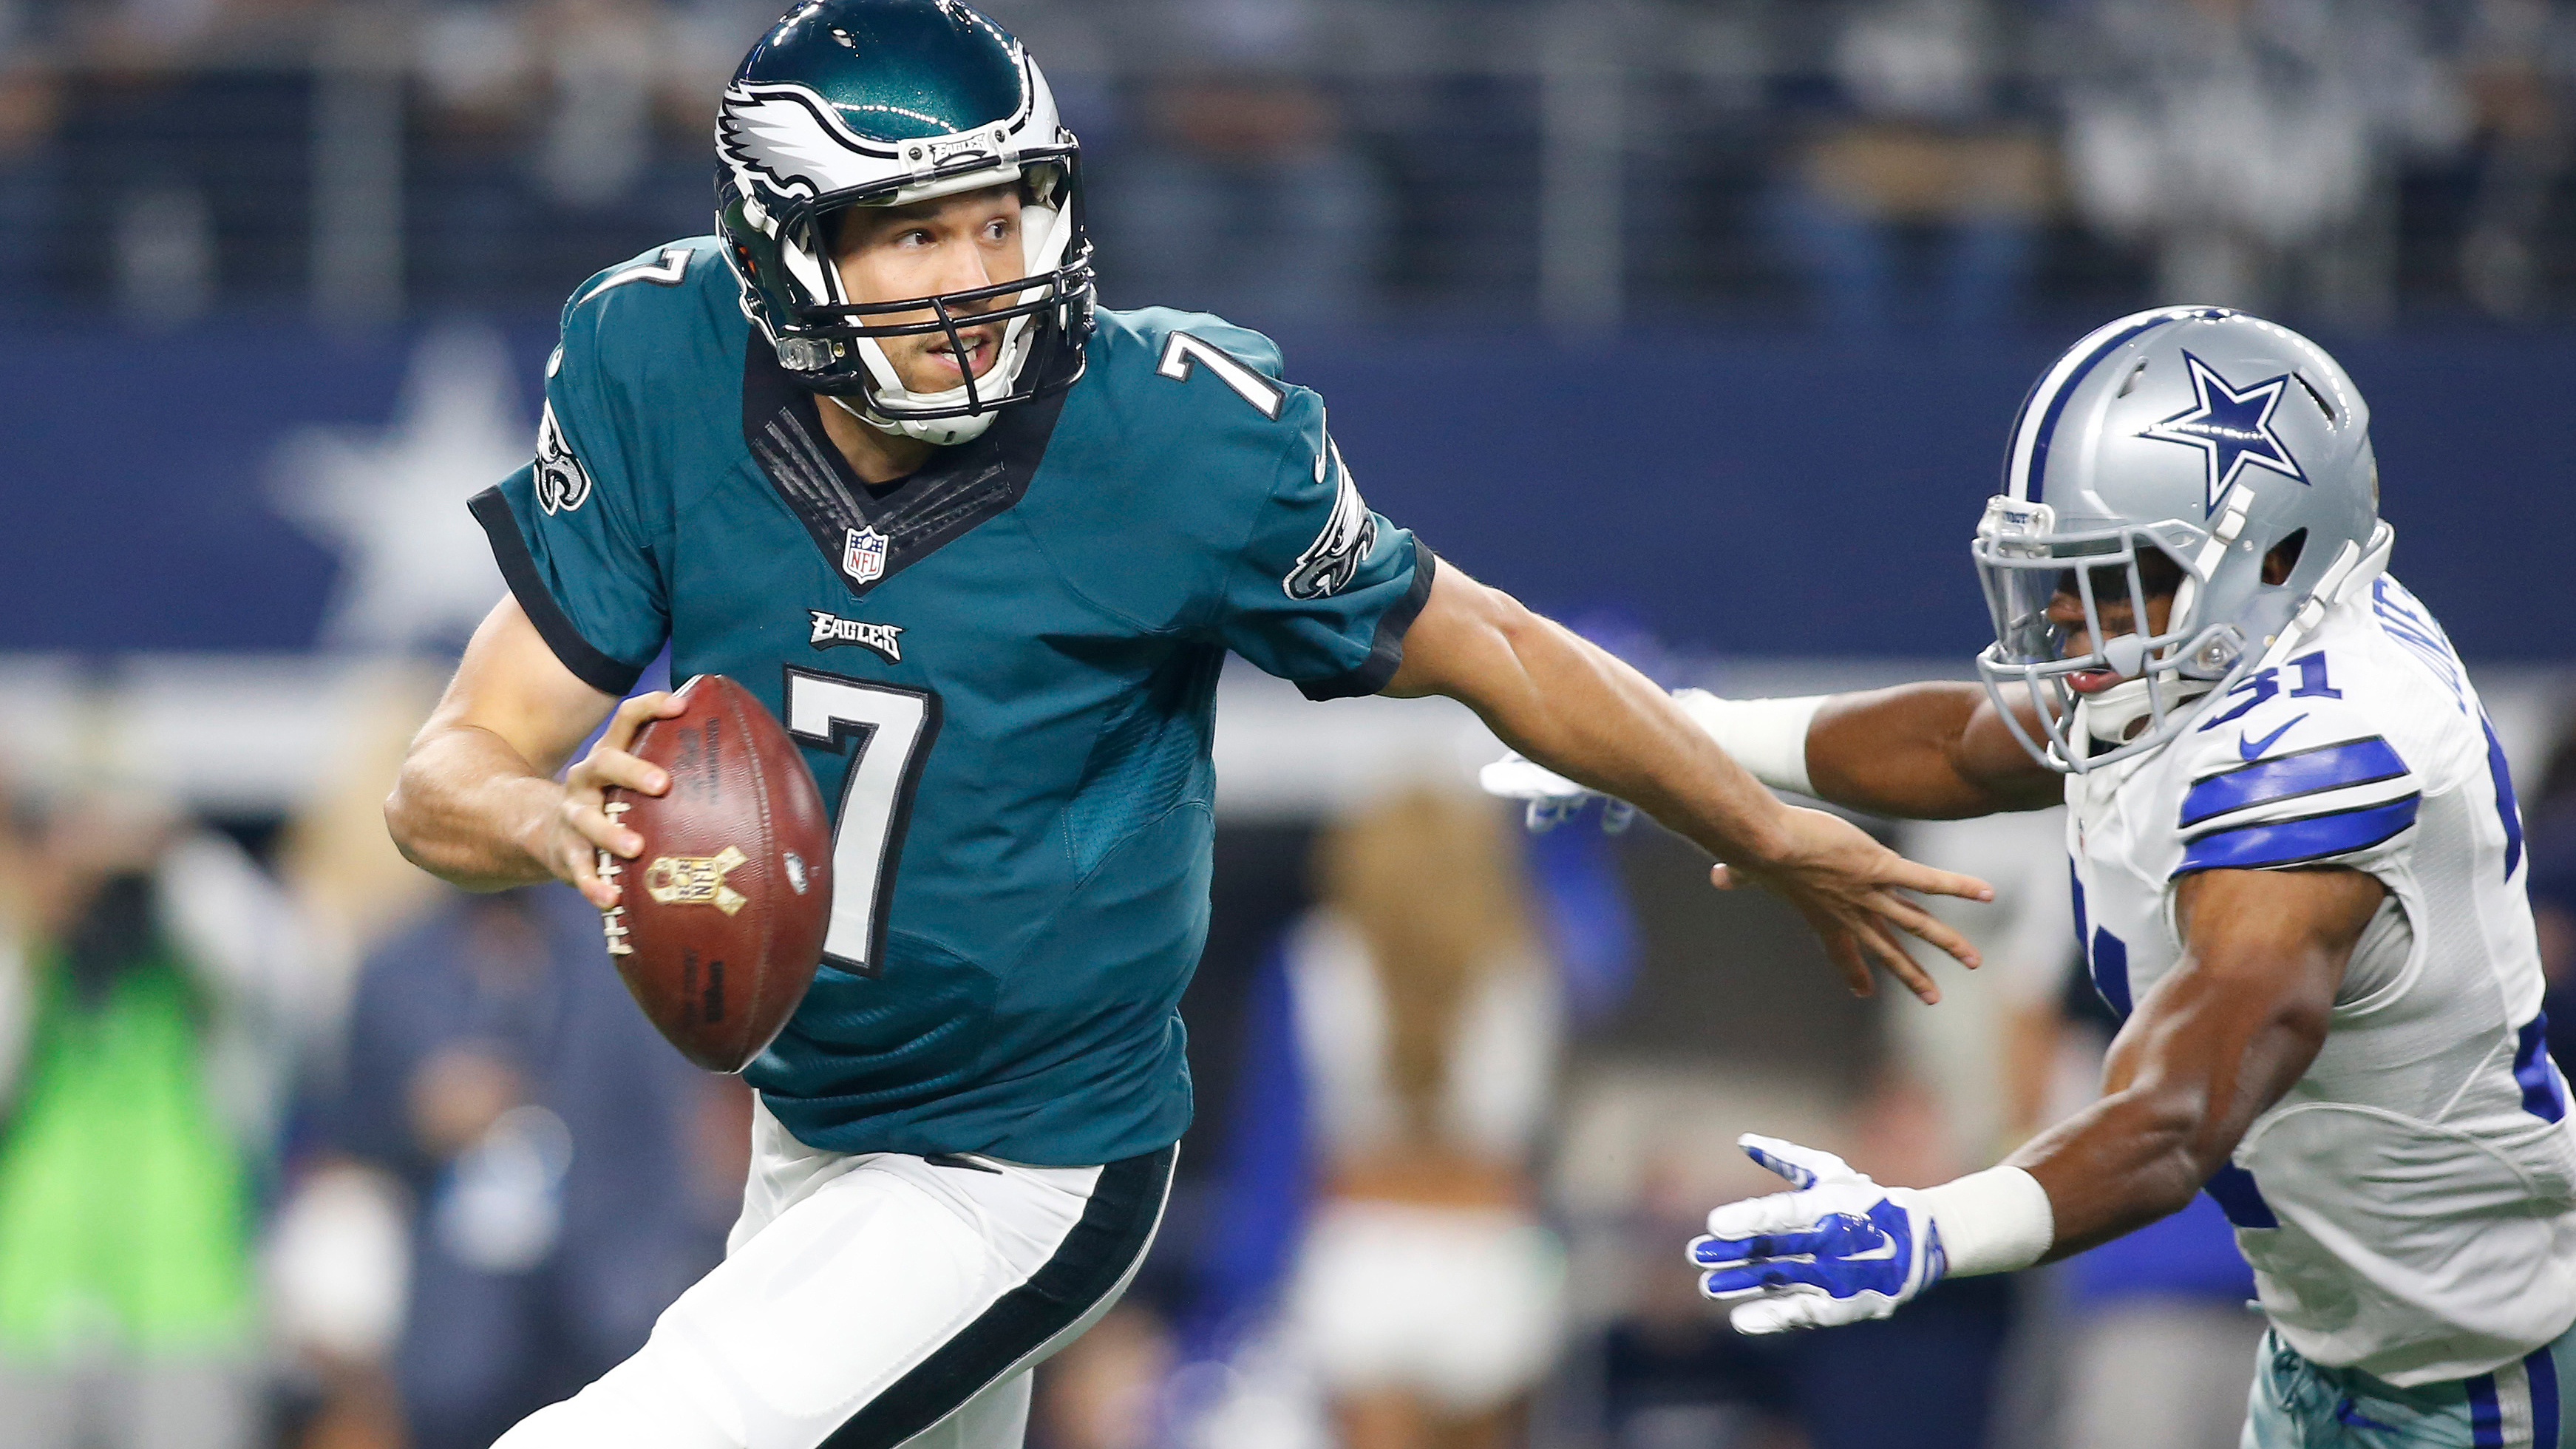 NFC East Blog - NFC East Free Agency: Key Philadelphia Eagles Players 1